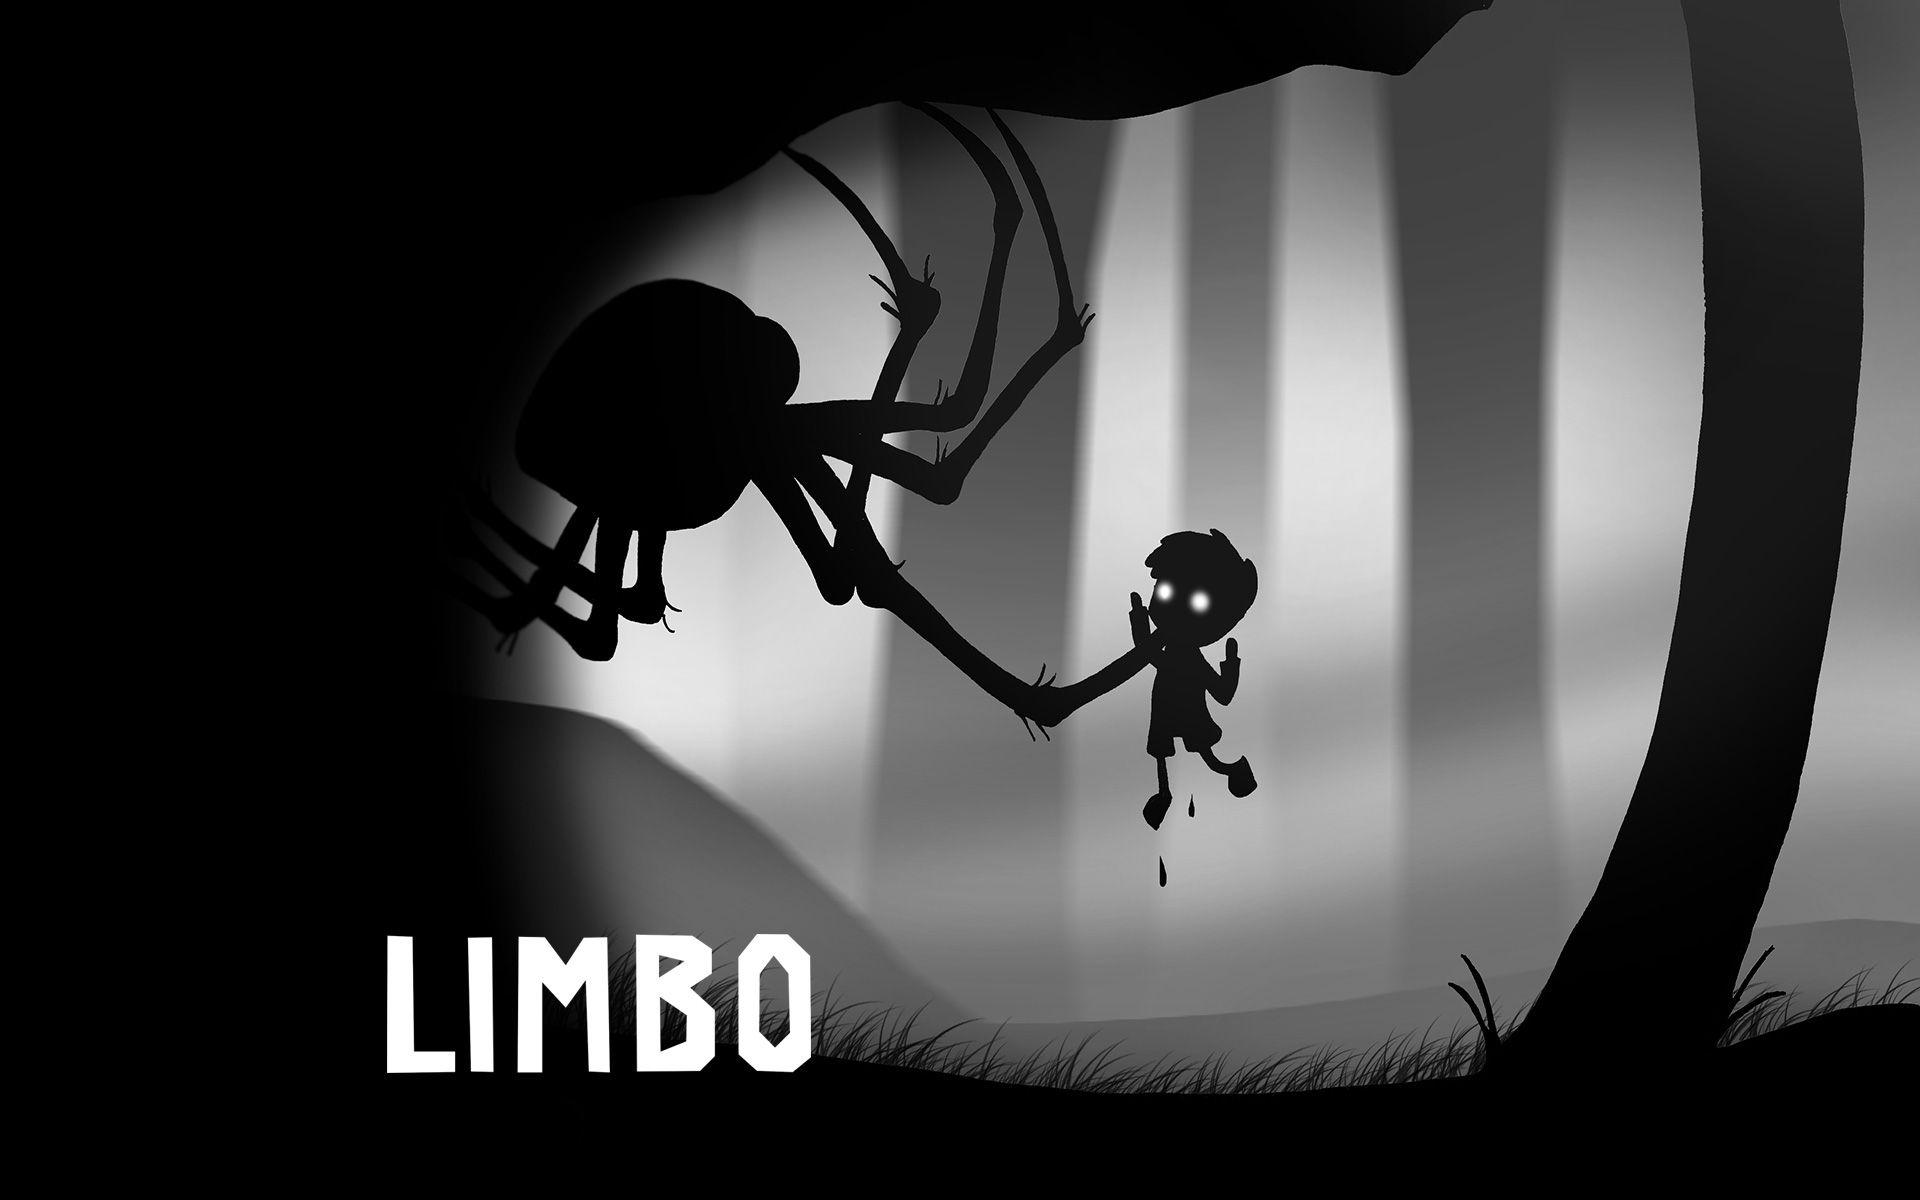 Deal Alert] Deliciously creepy adventure game LIMBO on sale at